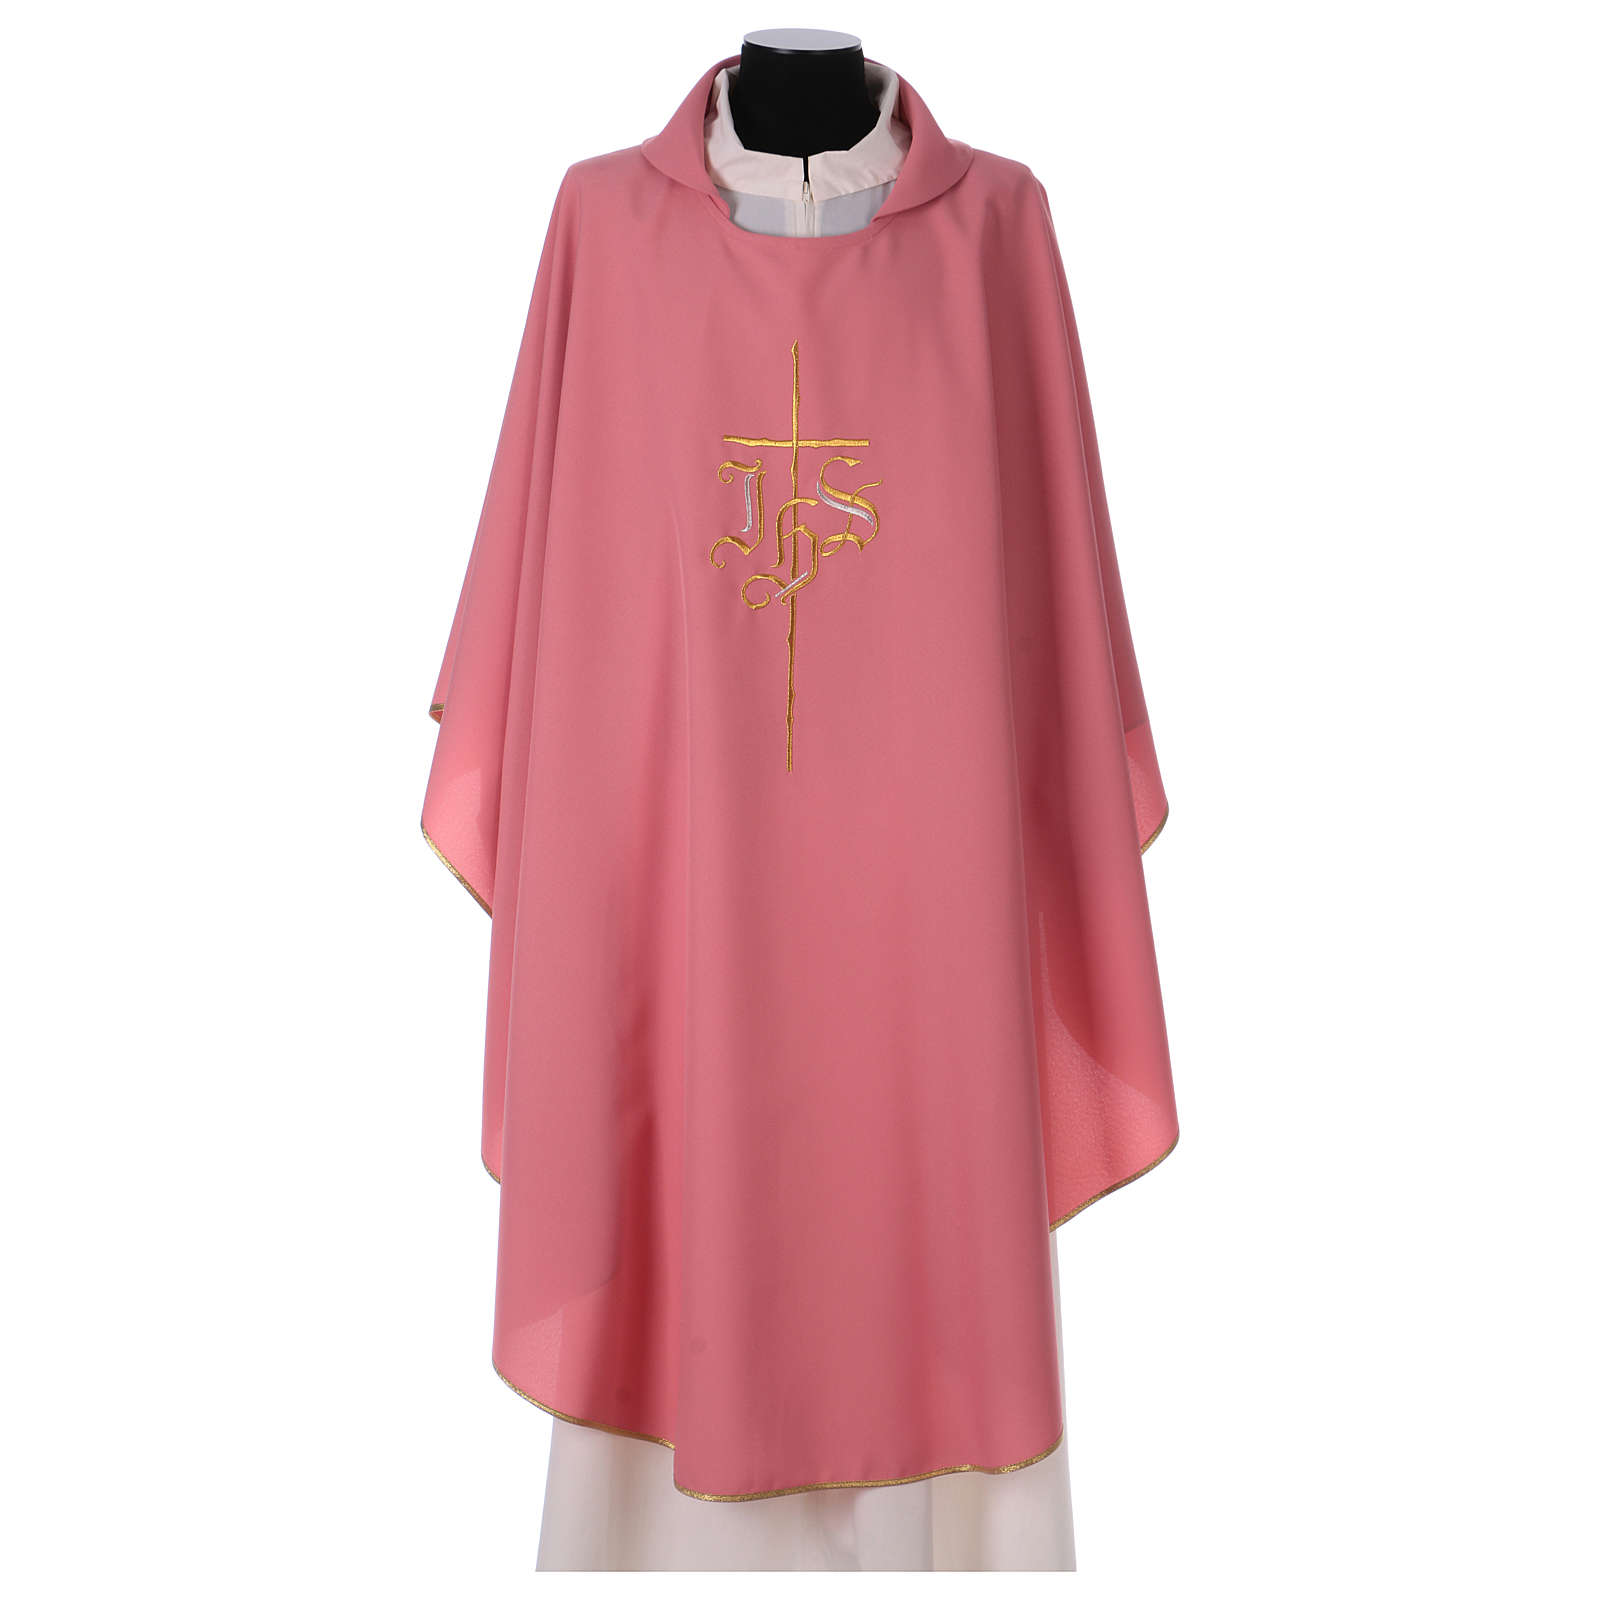 Rose IHS Chasuble with Cross in polyester 4